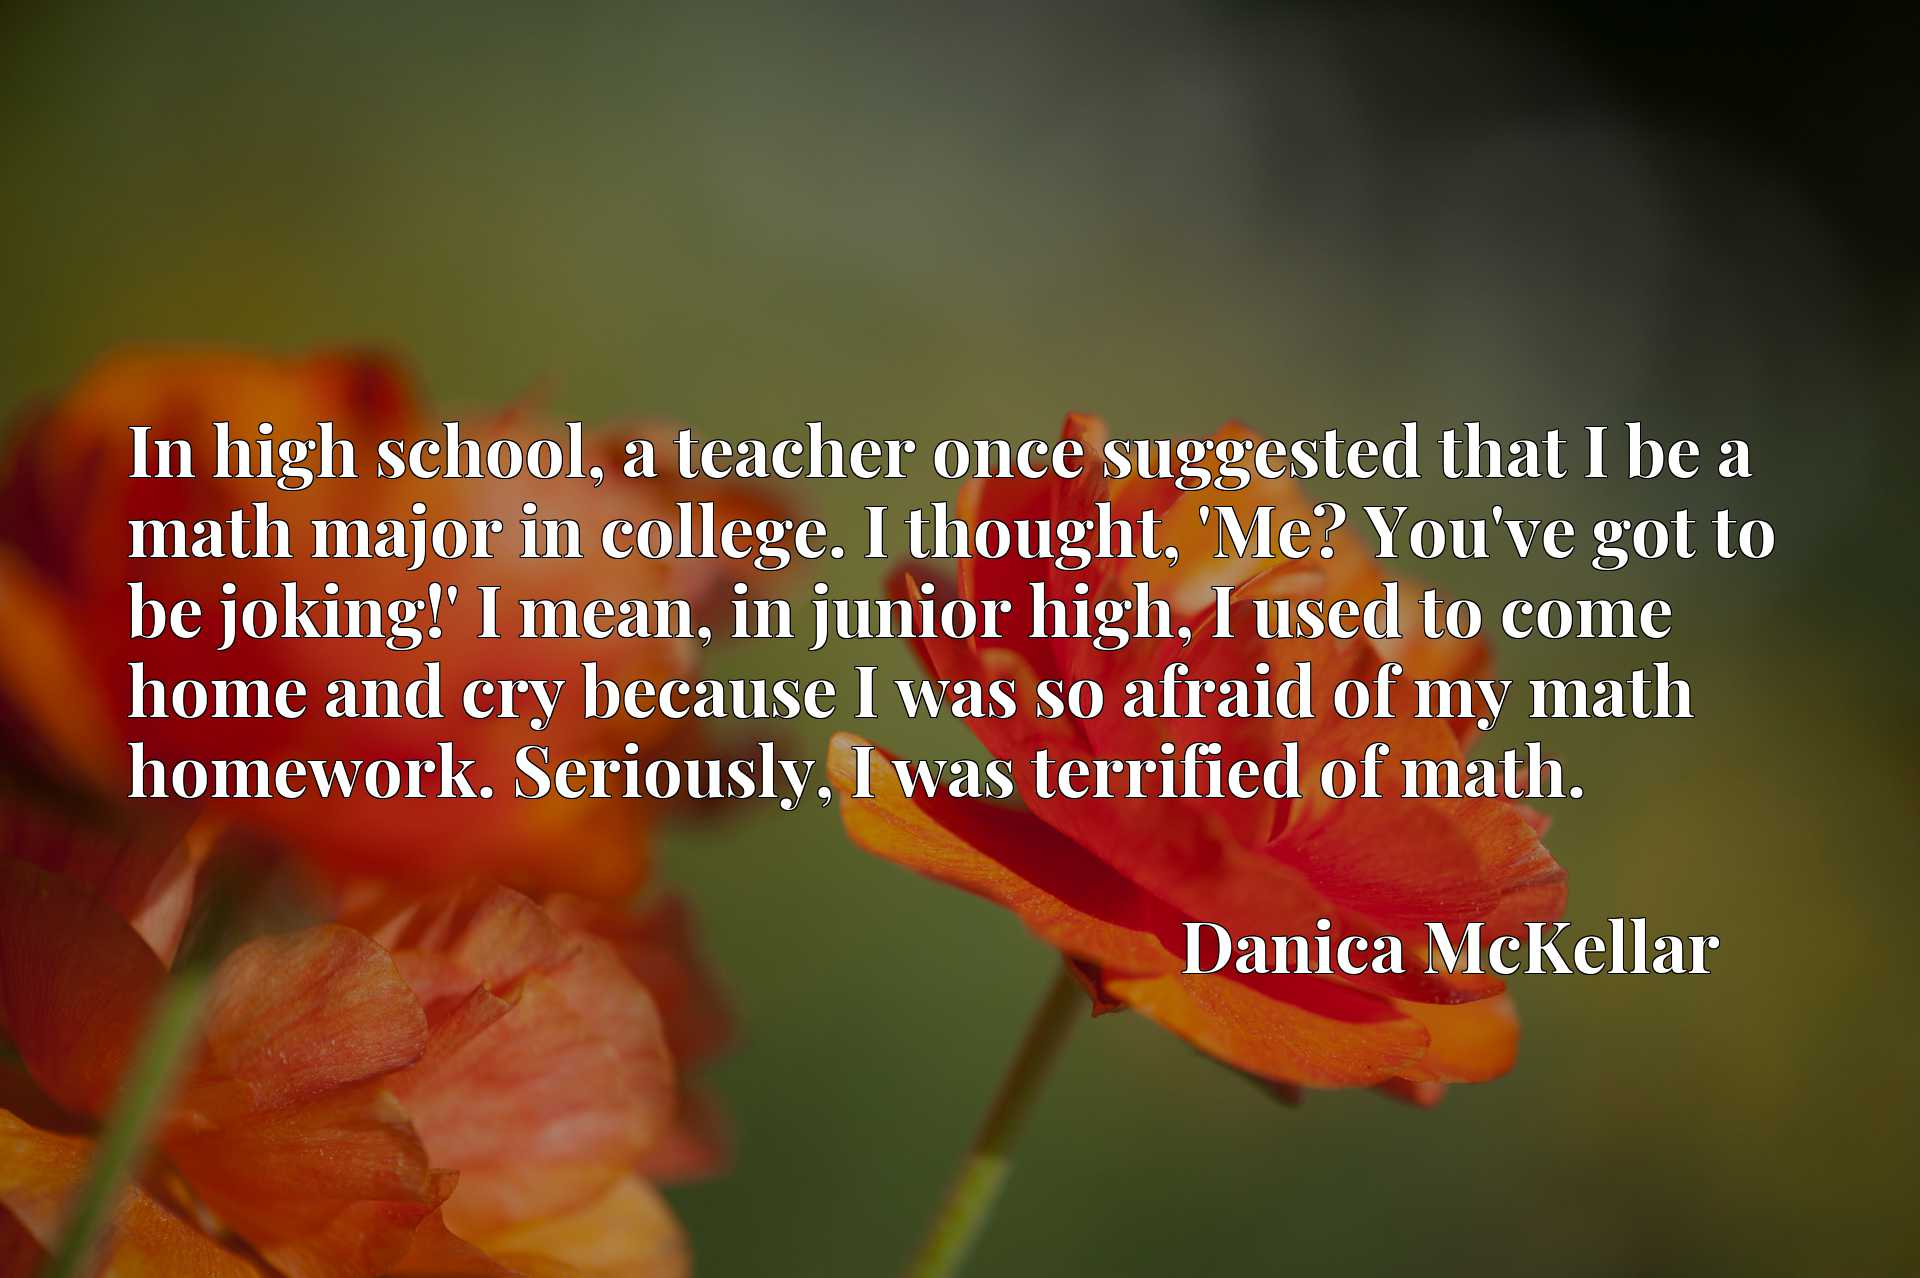 In high school, a teacher once suggested that I be a math major in college. I thought, 'Me? You've got to be joking!' I mean, in junior high, I used to come home and cry because I was so afraid of my math homework. Seriously, I was terrified of math.